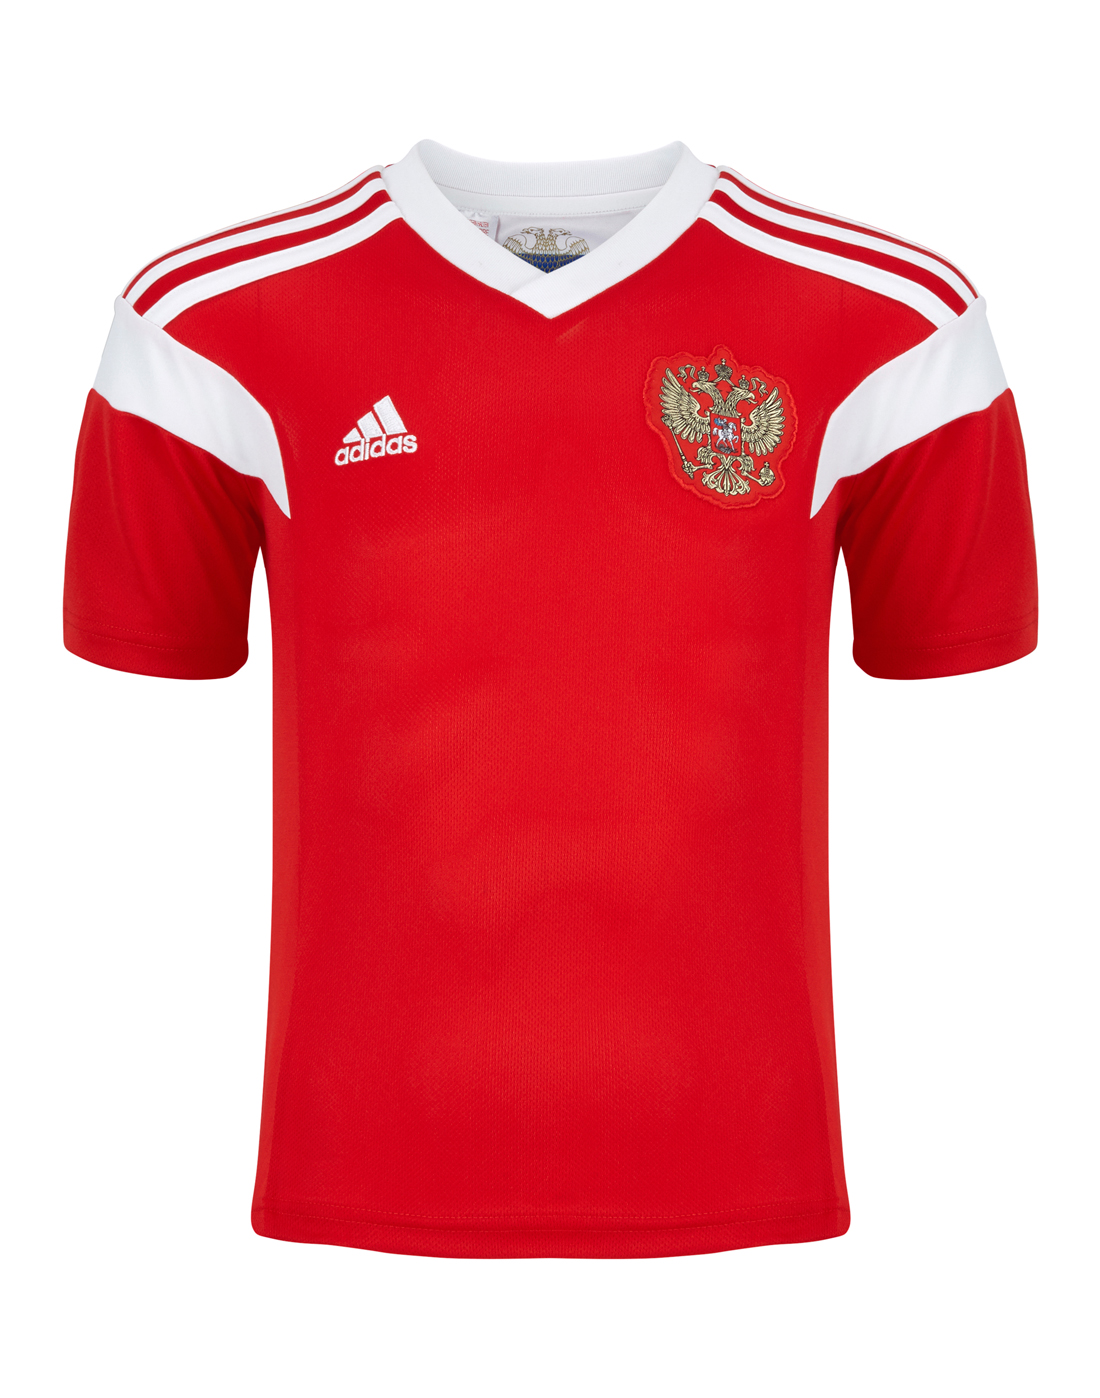 d8ce7a86 adidas Kids Russia WC18 Home Jersey | Life Style Sports